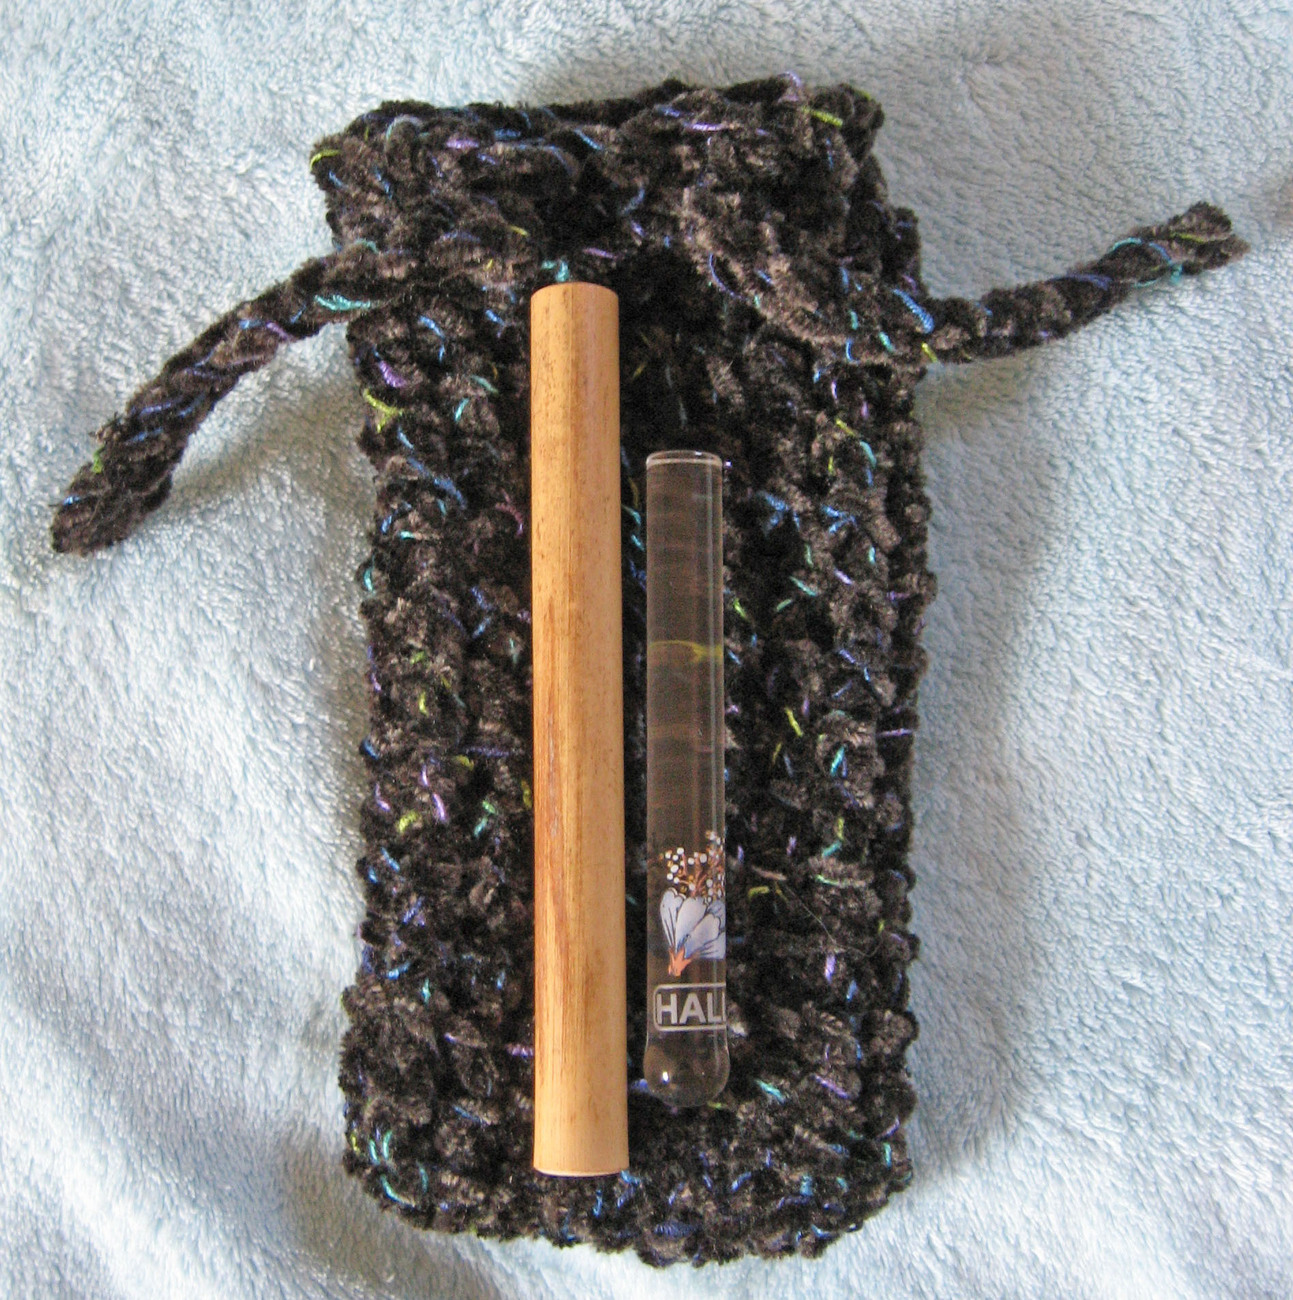 Mtn Dulcimer Noter Pouch/Charcoal/Handmade in USA/Pouch Only/No Noters Included